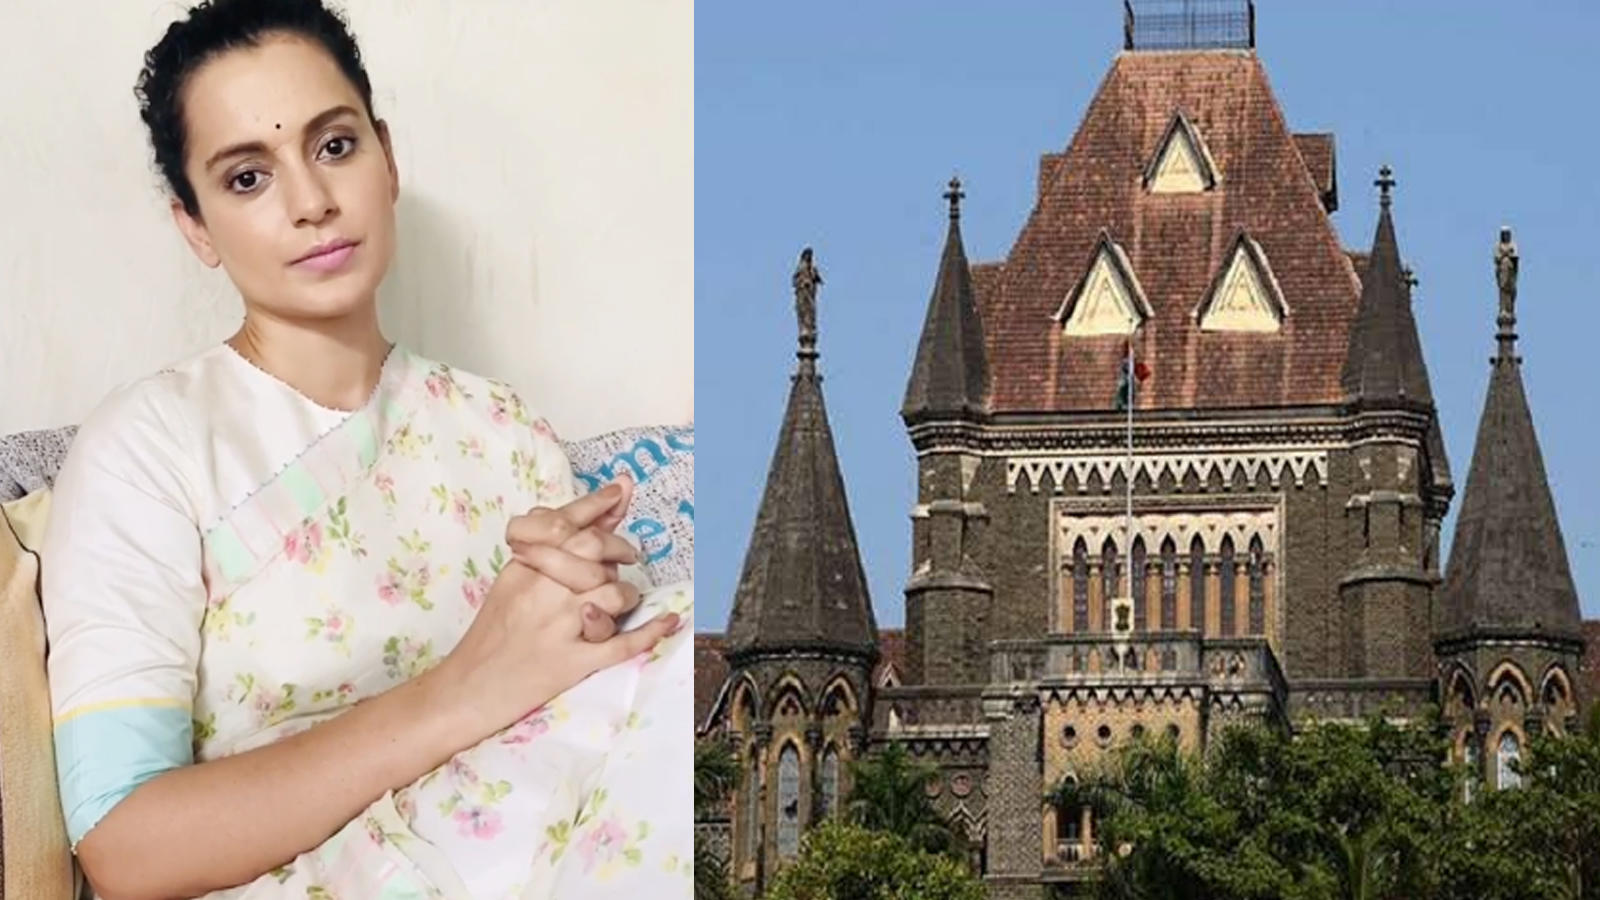 kangana-ranut-vs-bmc-actress-thanks-bombay-high-court-for-saying-cannot-leave-kanganas-property-in-partly-demolished-state-during-monsoons